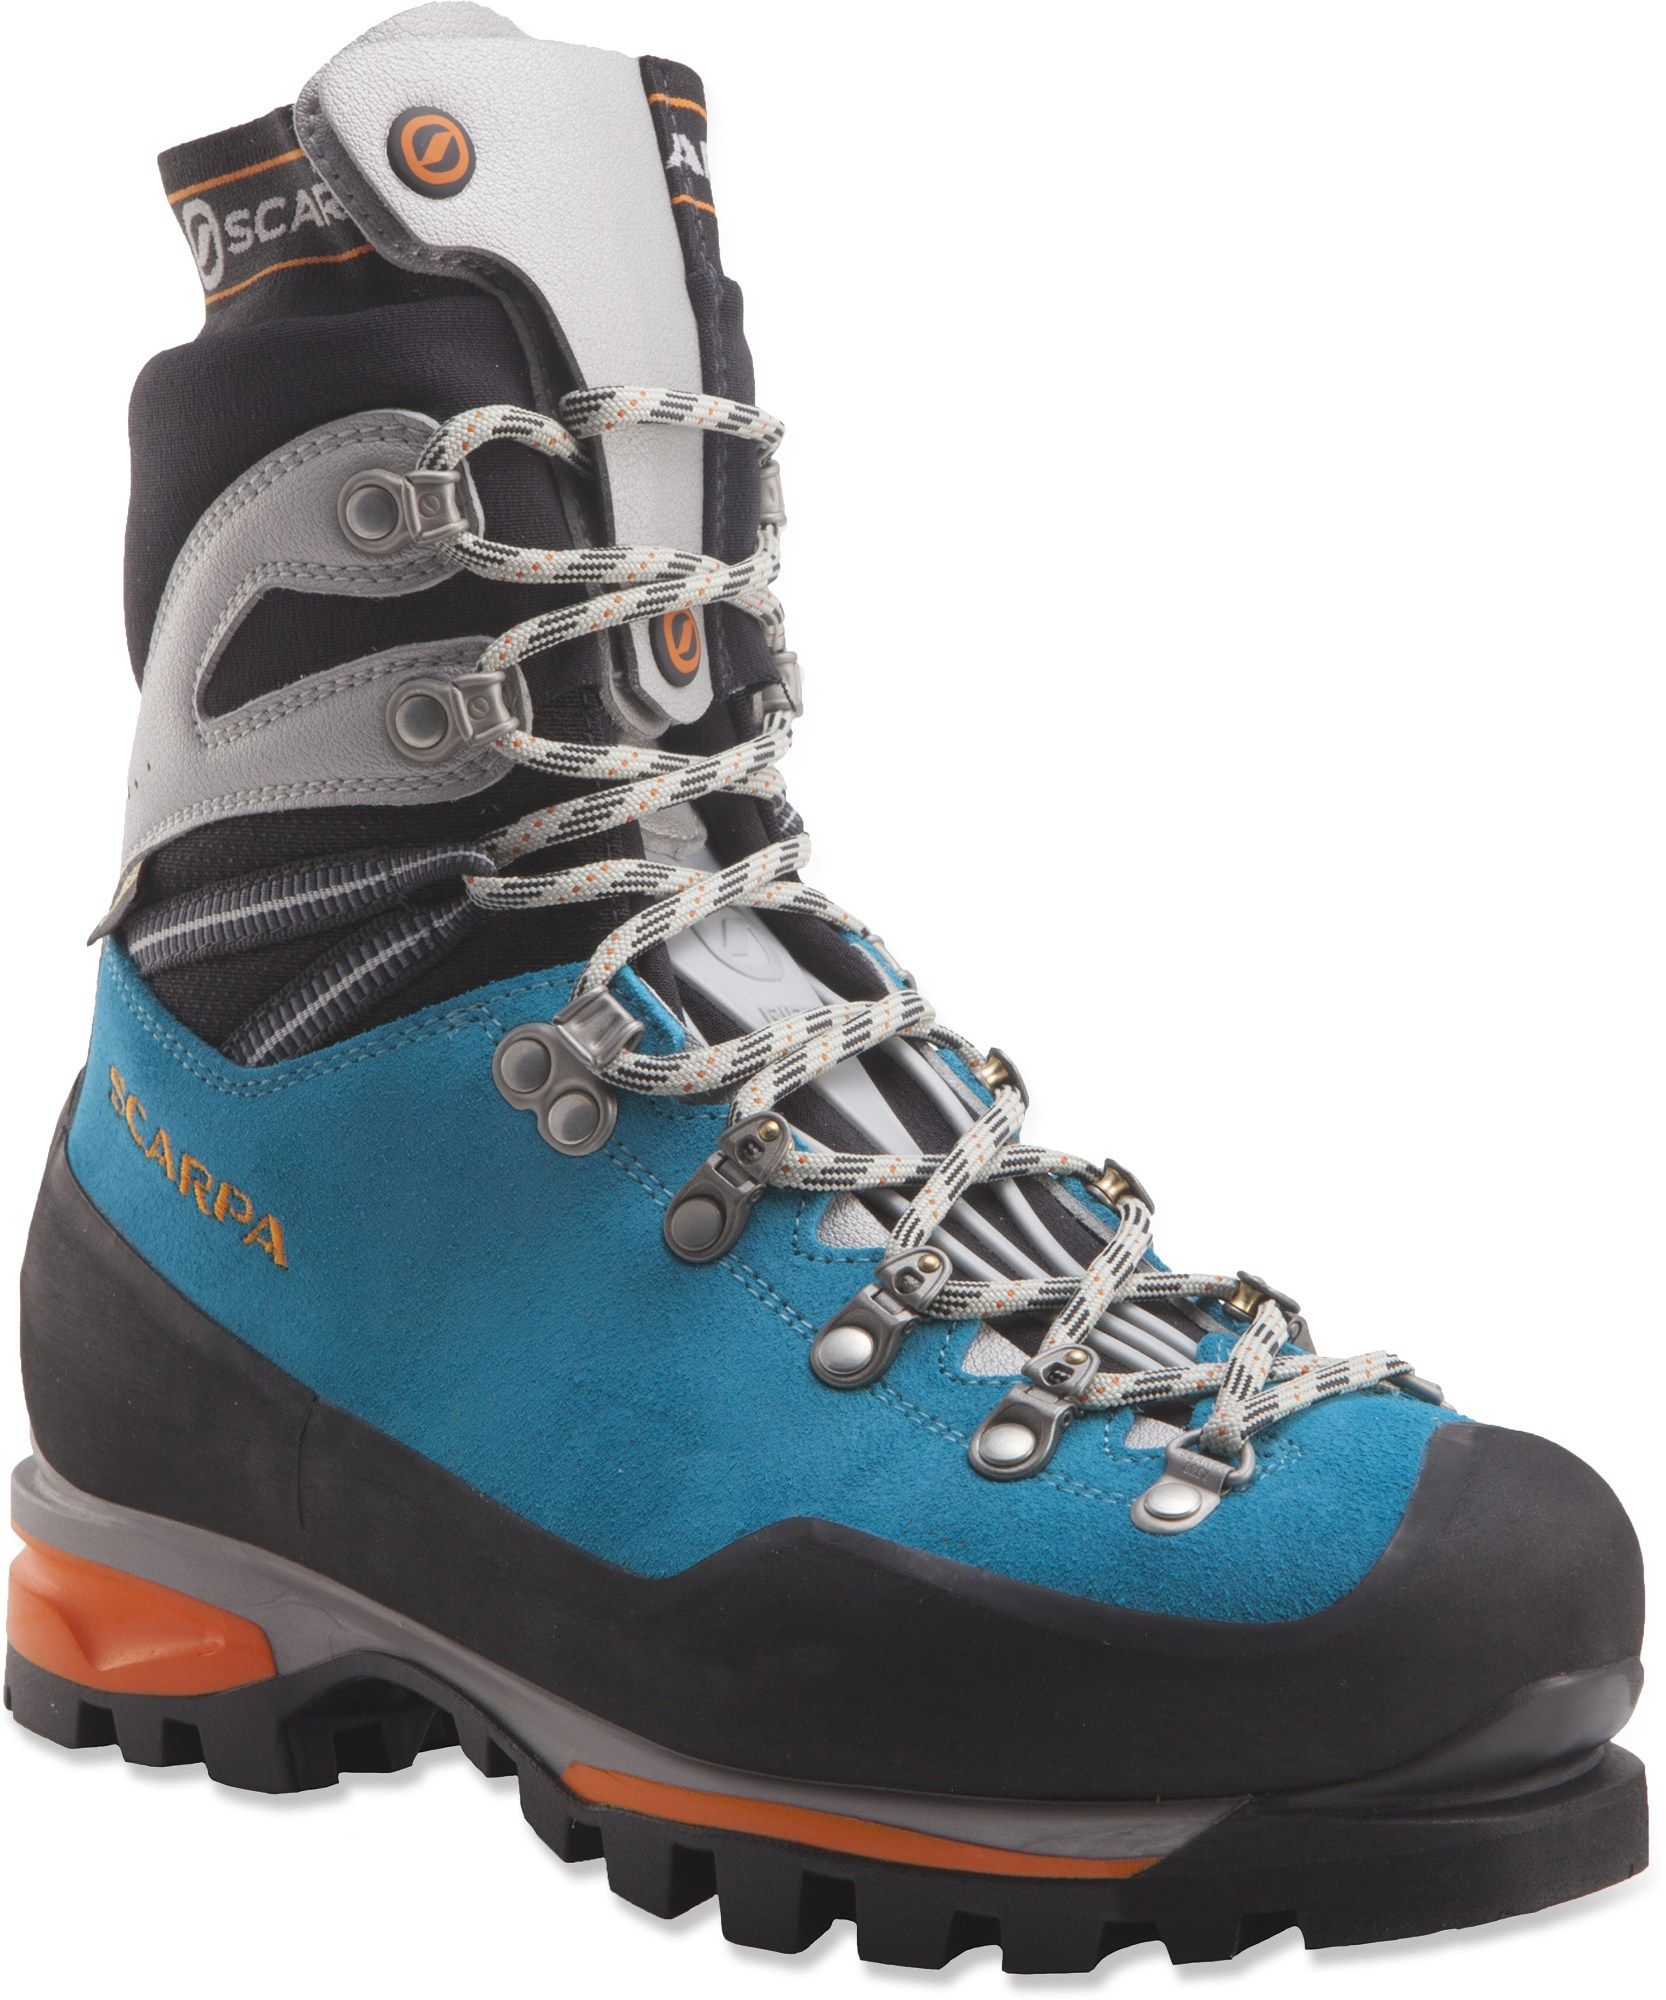 9ef4f284fbb Mont Blanc Pro GTX Mountaineering Boots - Women's | *Apparel ...